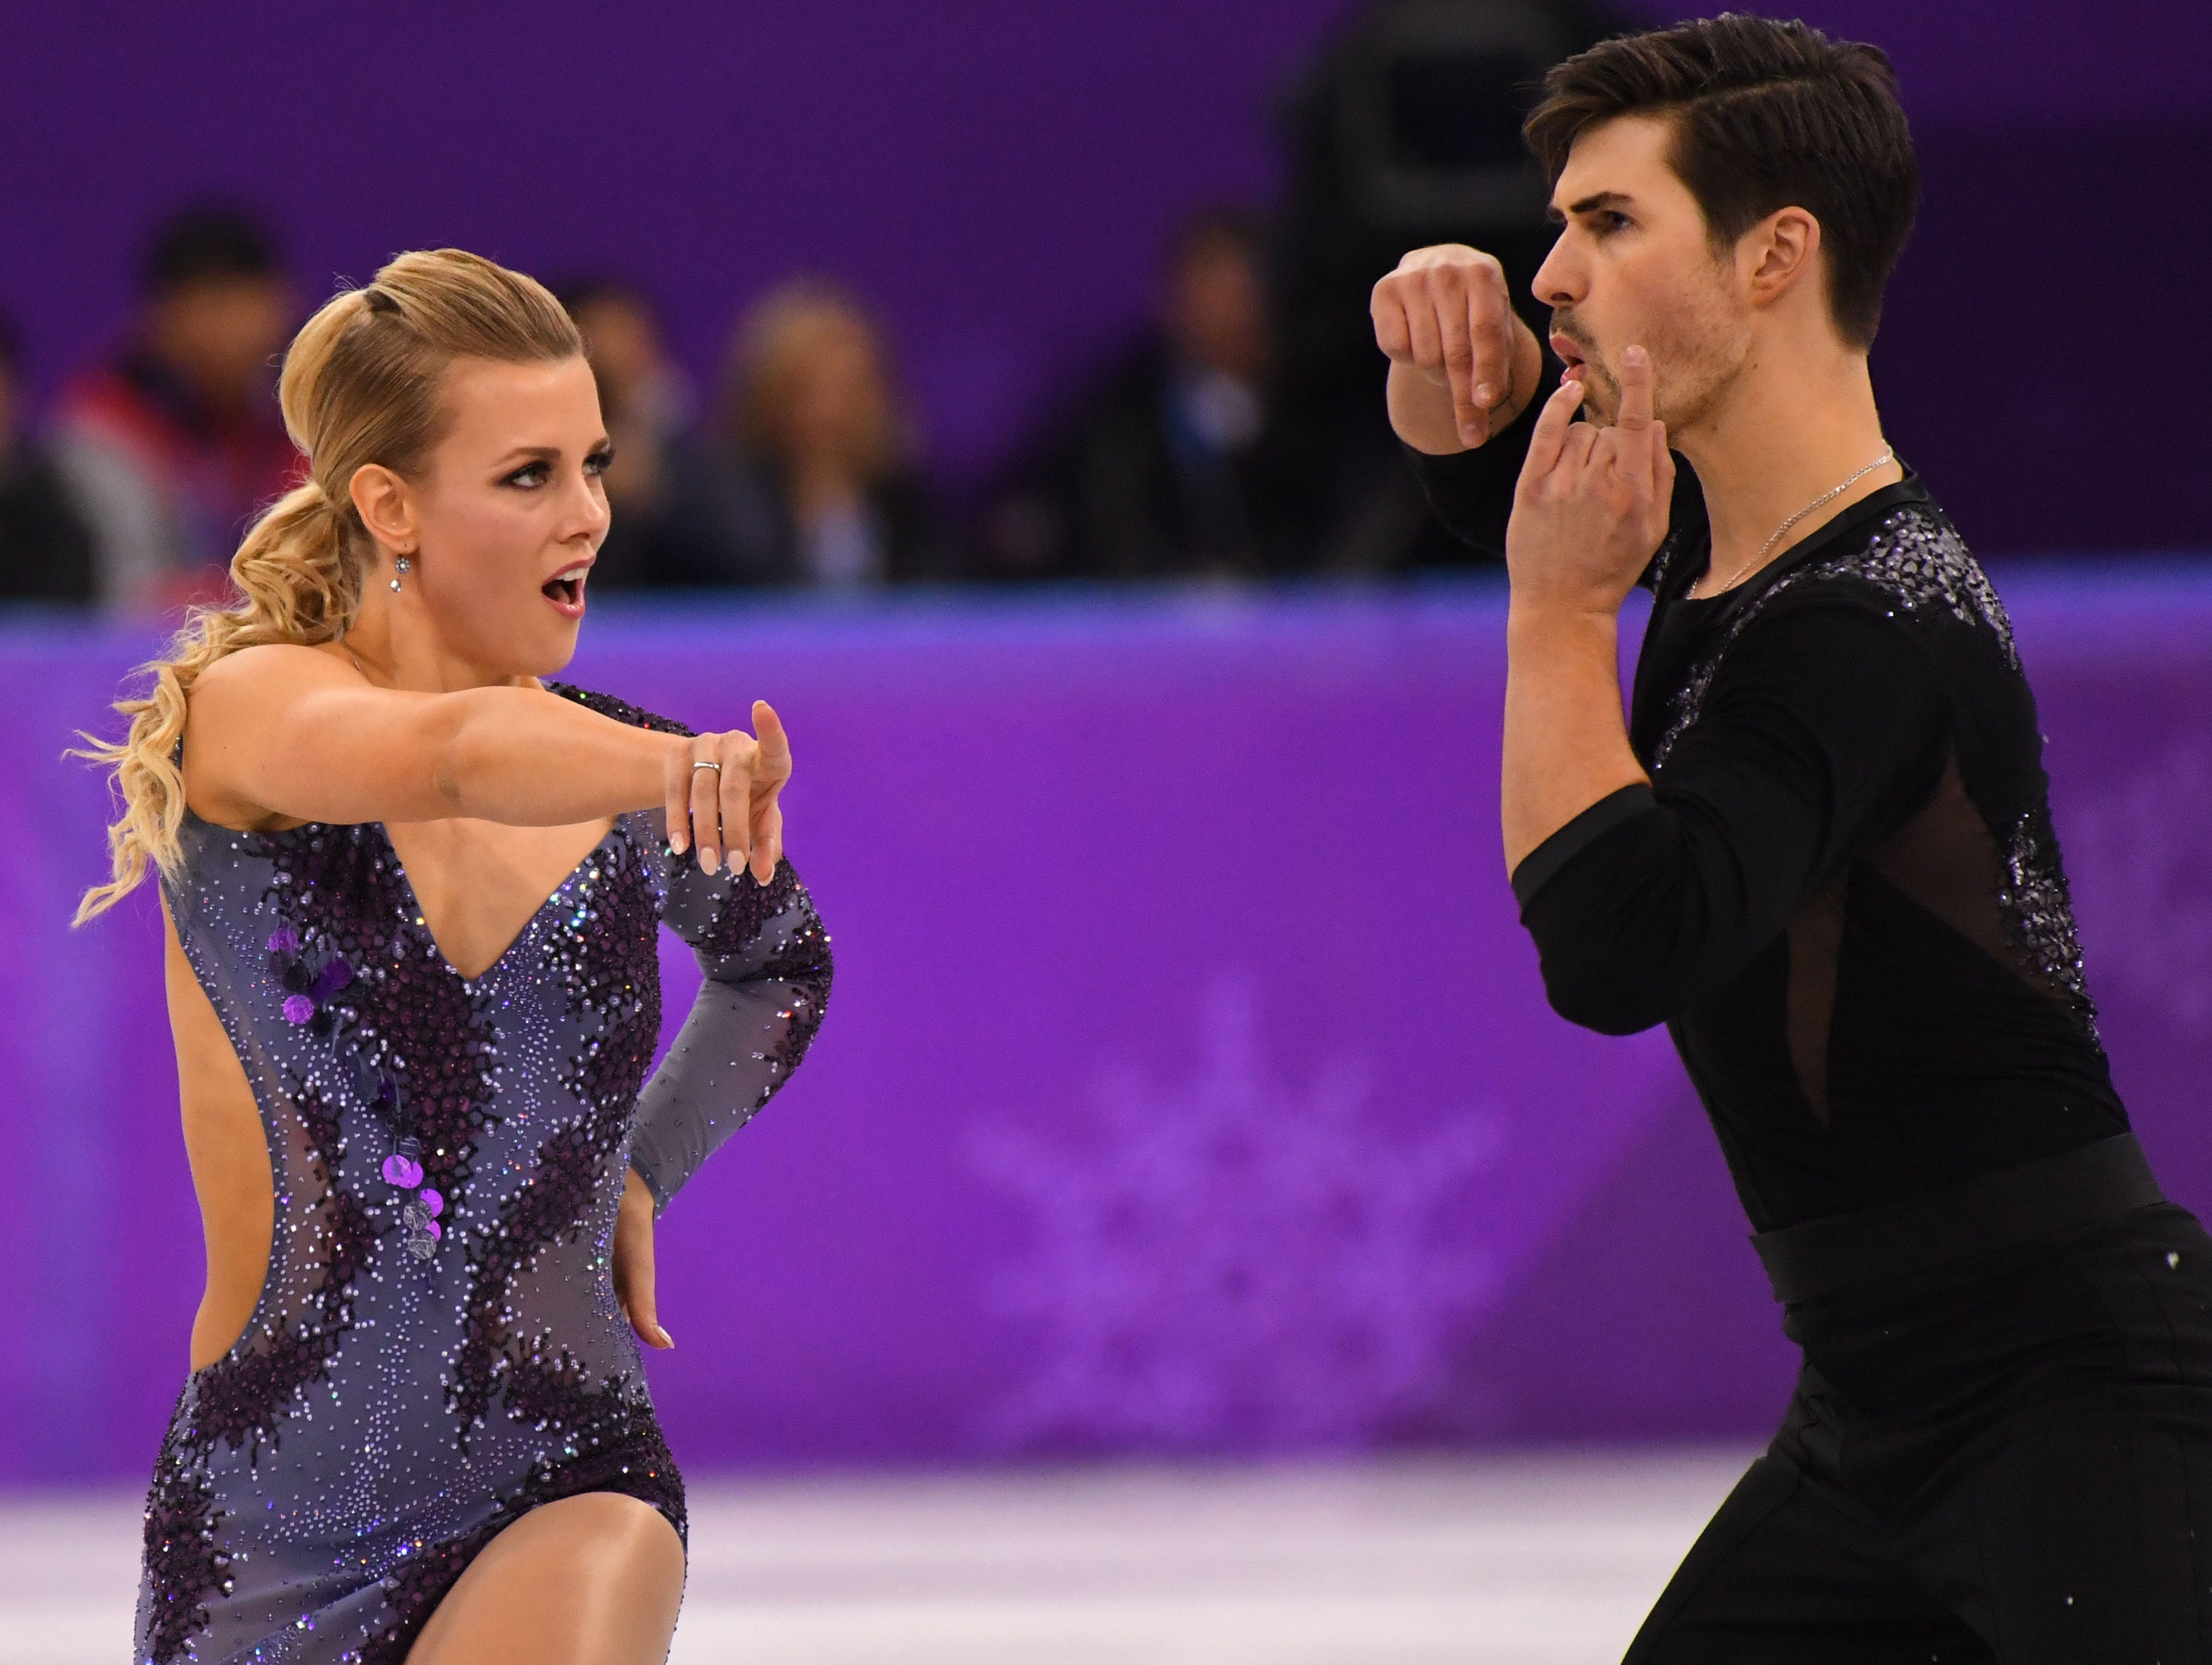 Feb. 19, 2018: Madison Hubbell and Zachary Donohue perform in the short dance event during the Pyeongchang 2018 Olympic Winter Games at Gangneung Ice Arena.